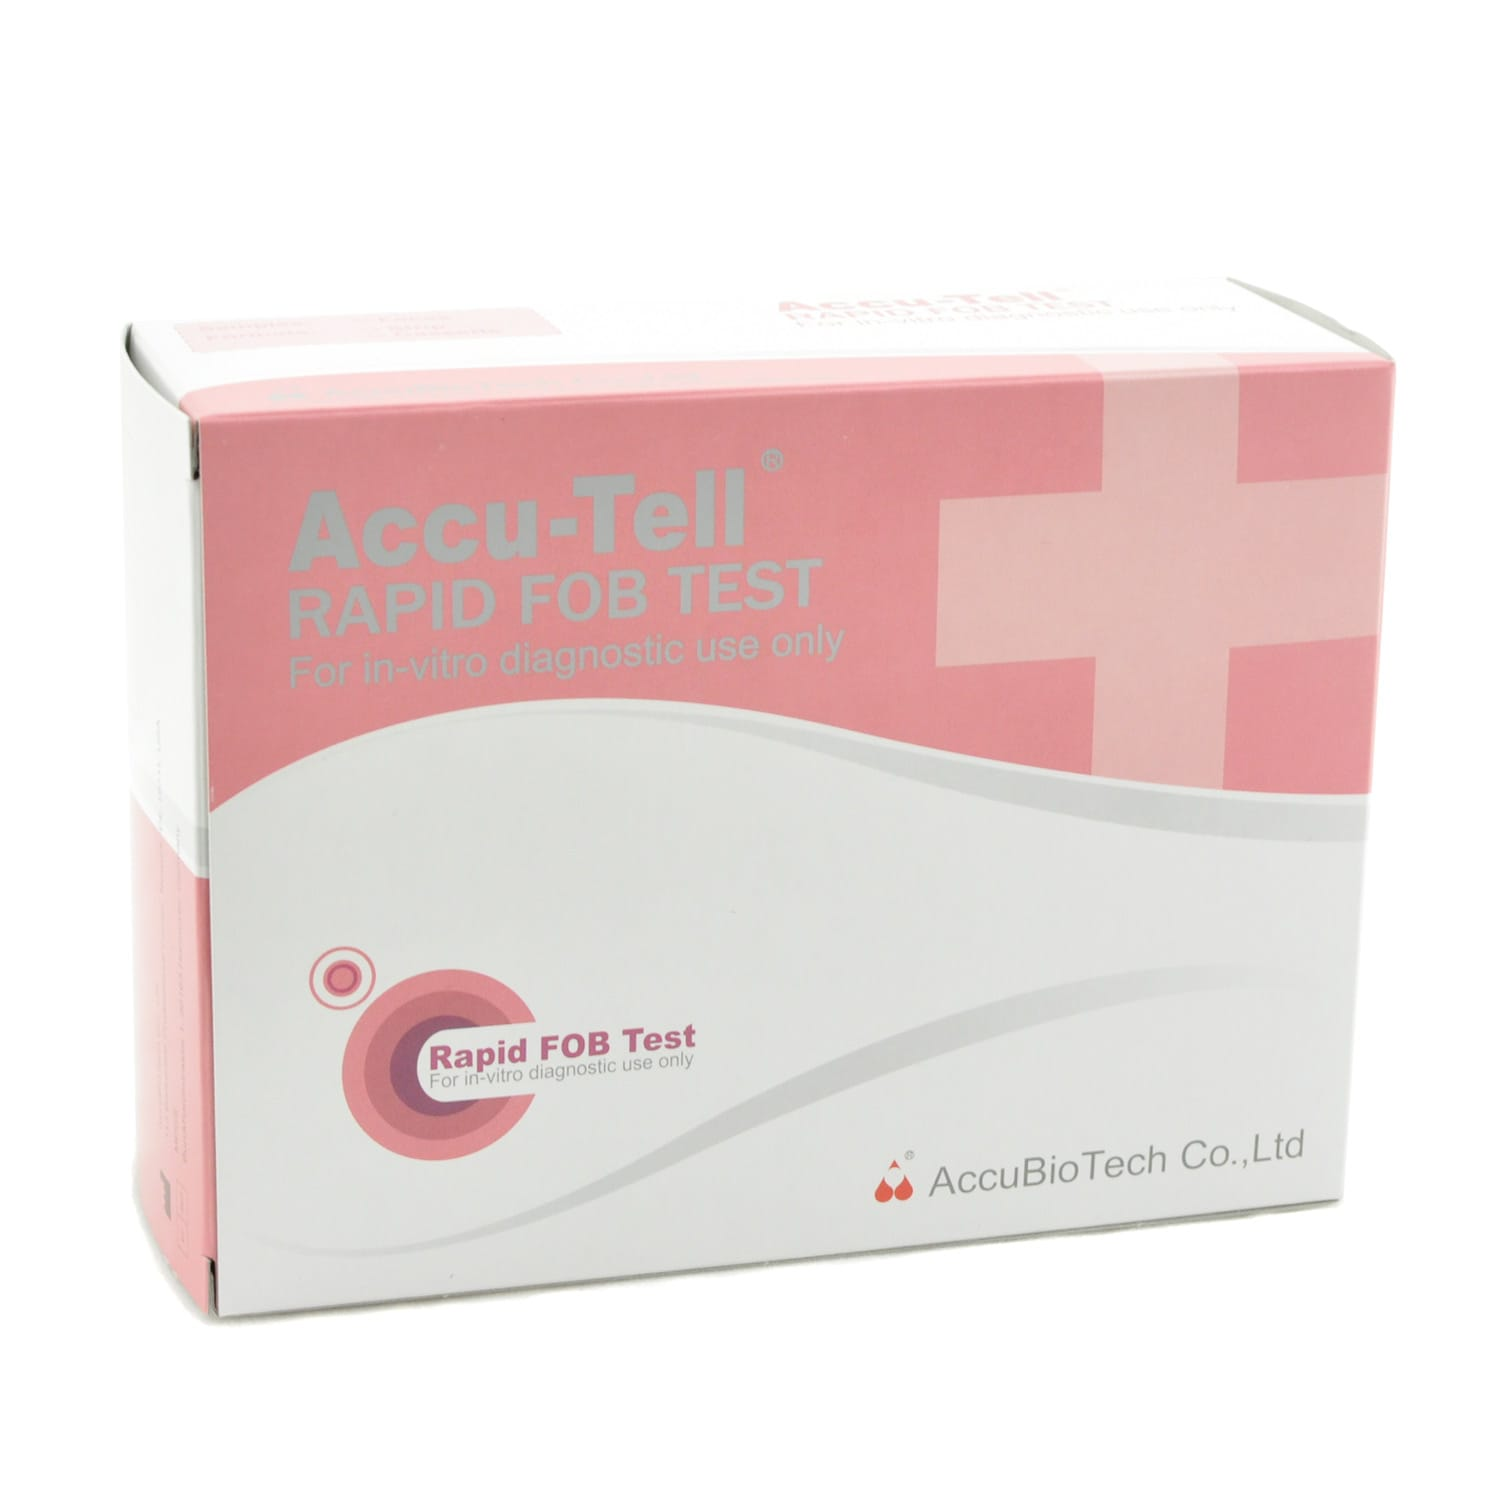 https://static.praxisdienst.com/out/pictures/generated/product/4/1500_1500_100/126075_accu-tell-fob-schnelltest_accubiotech_verpackung.jpg